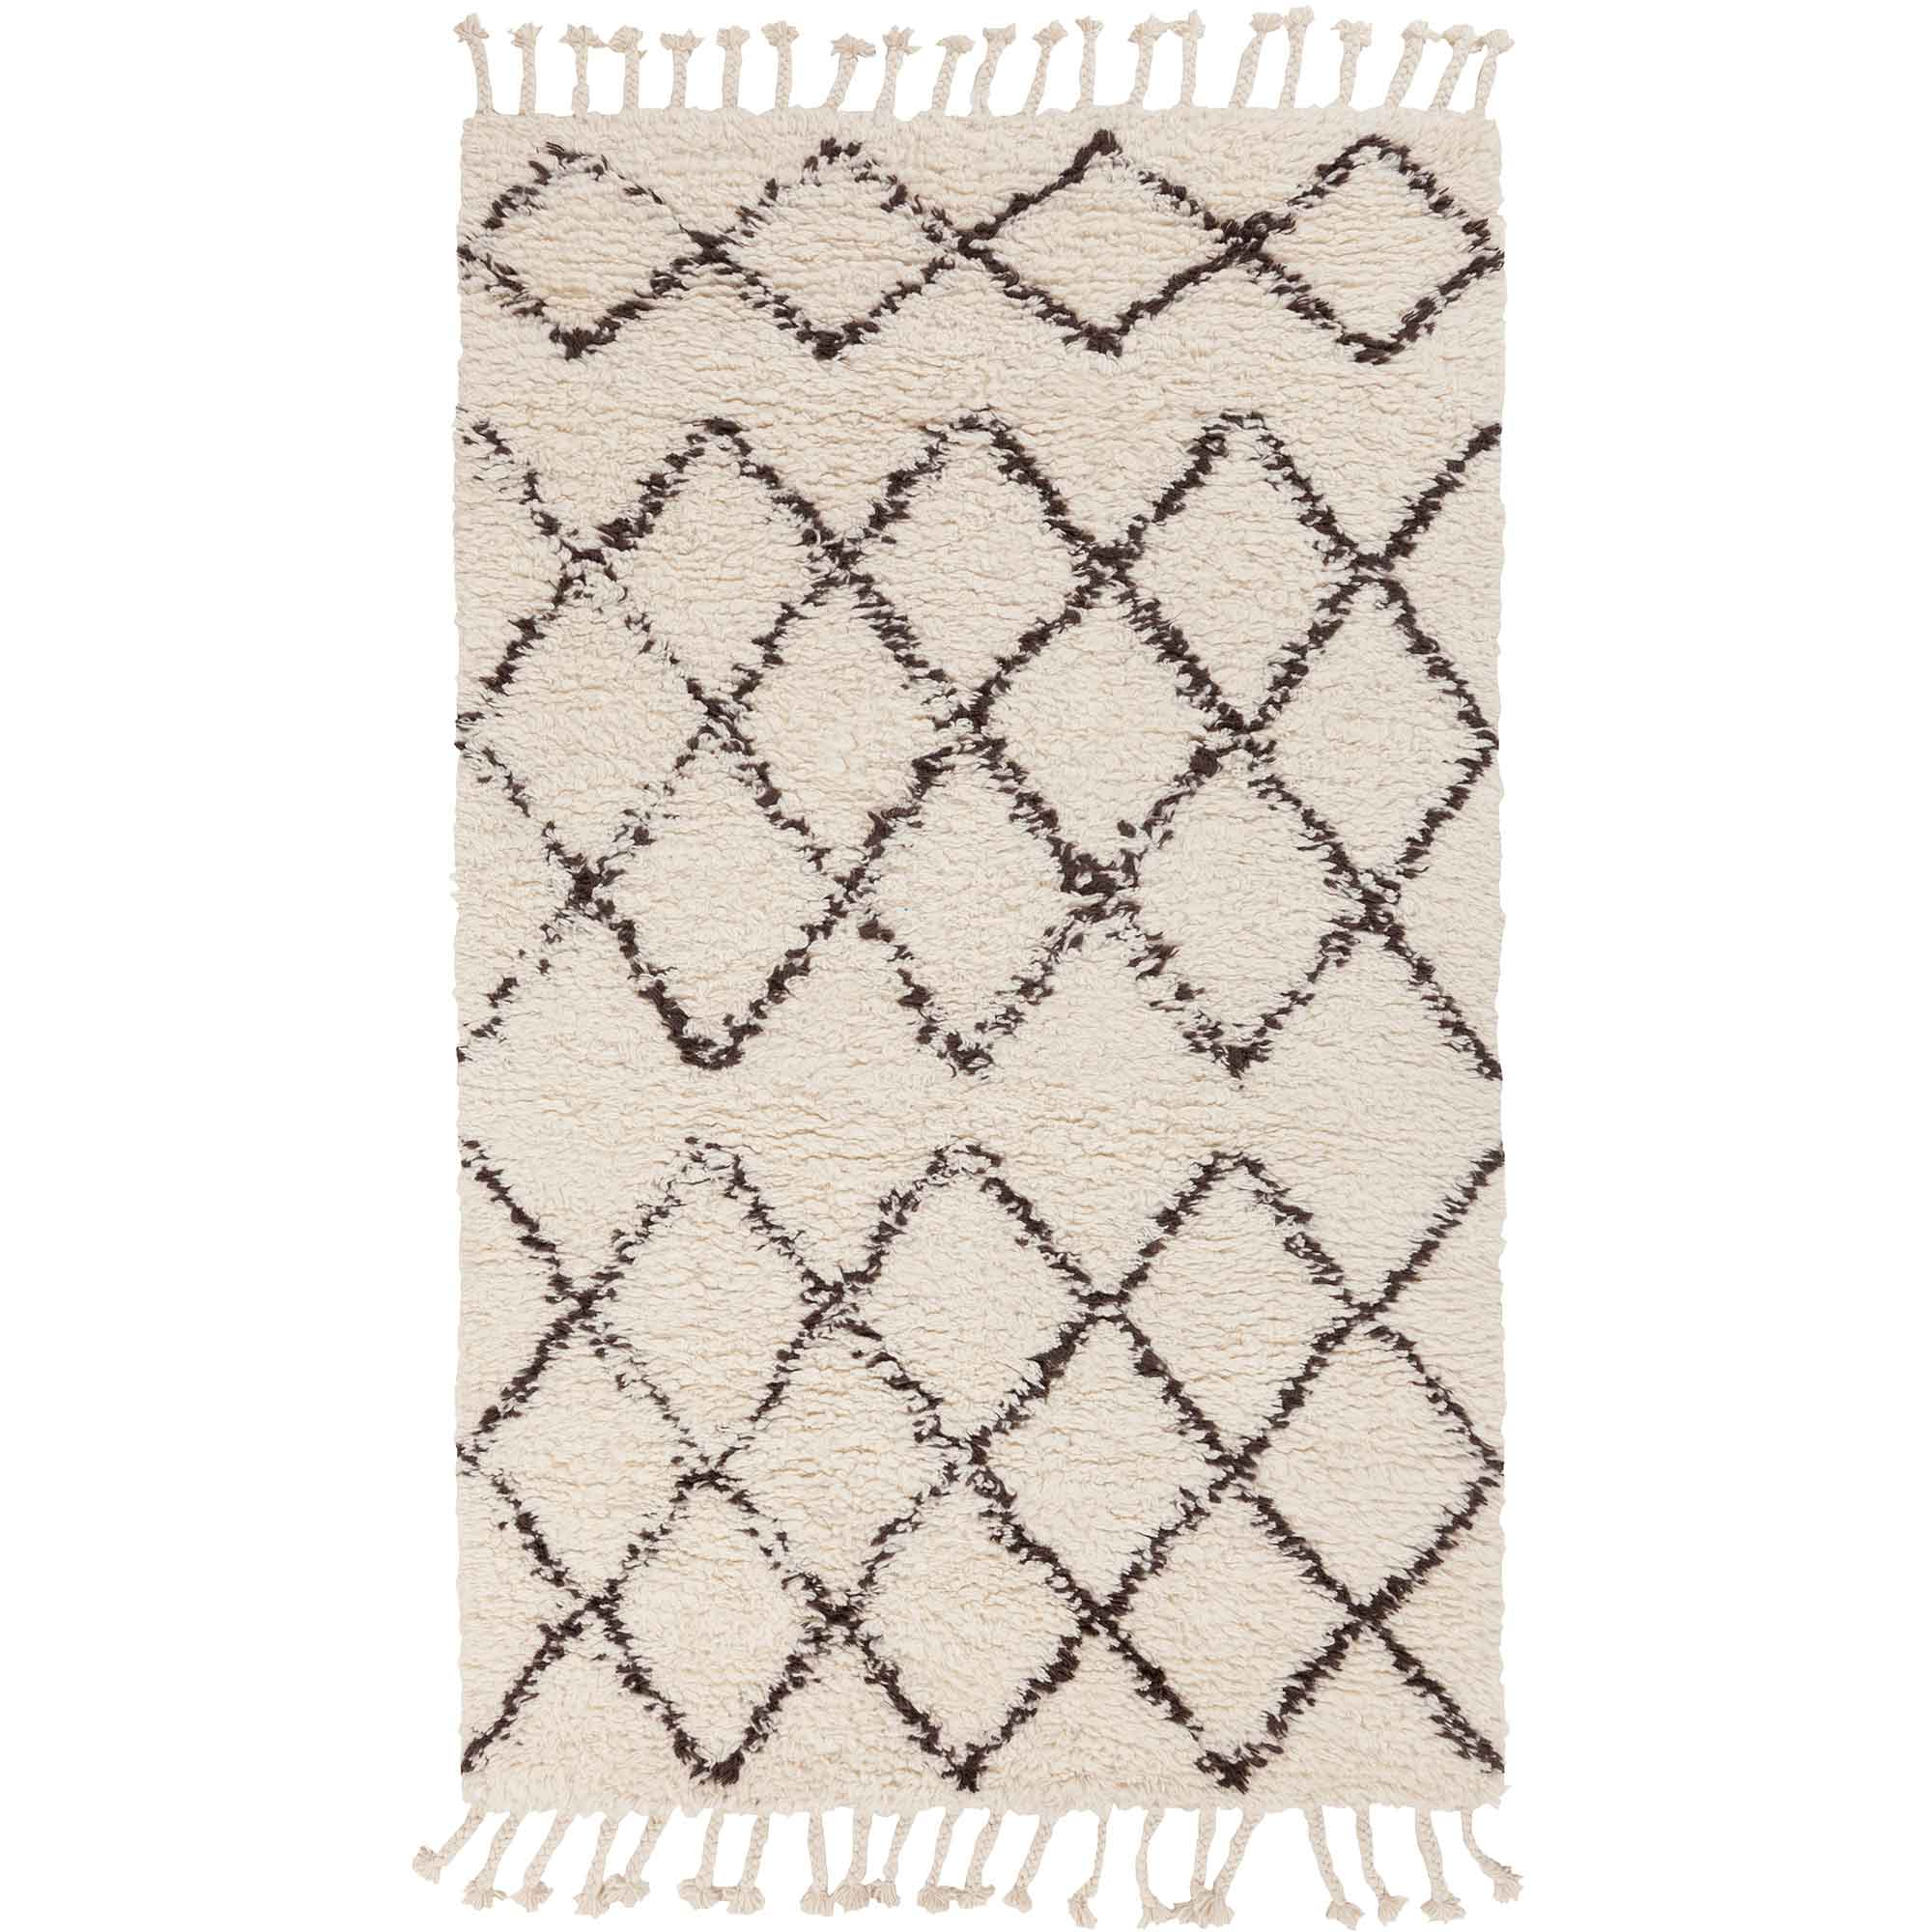 grandin rugs and polypropylene ru outdoor style area review with pad overstock rug out furniture deck lowes midcentury bohemian road junktion it